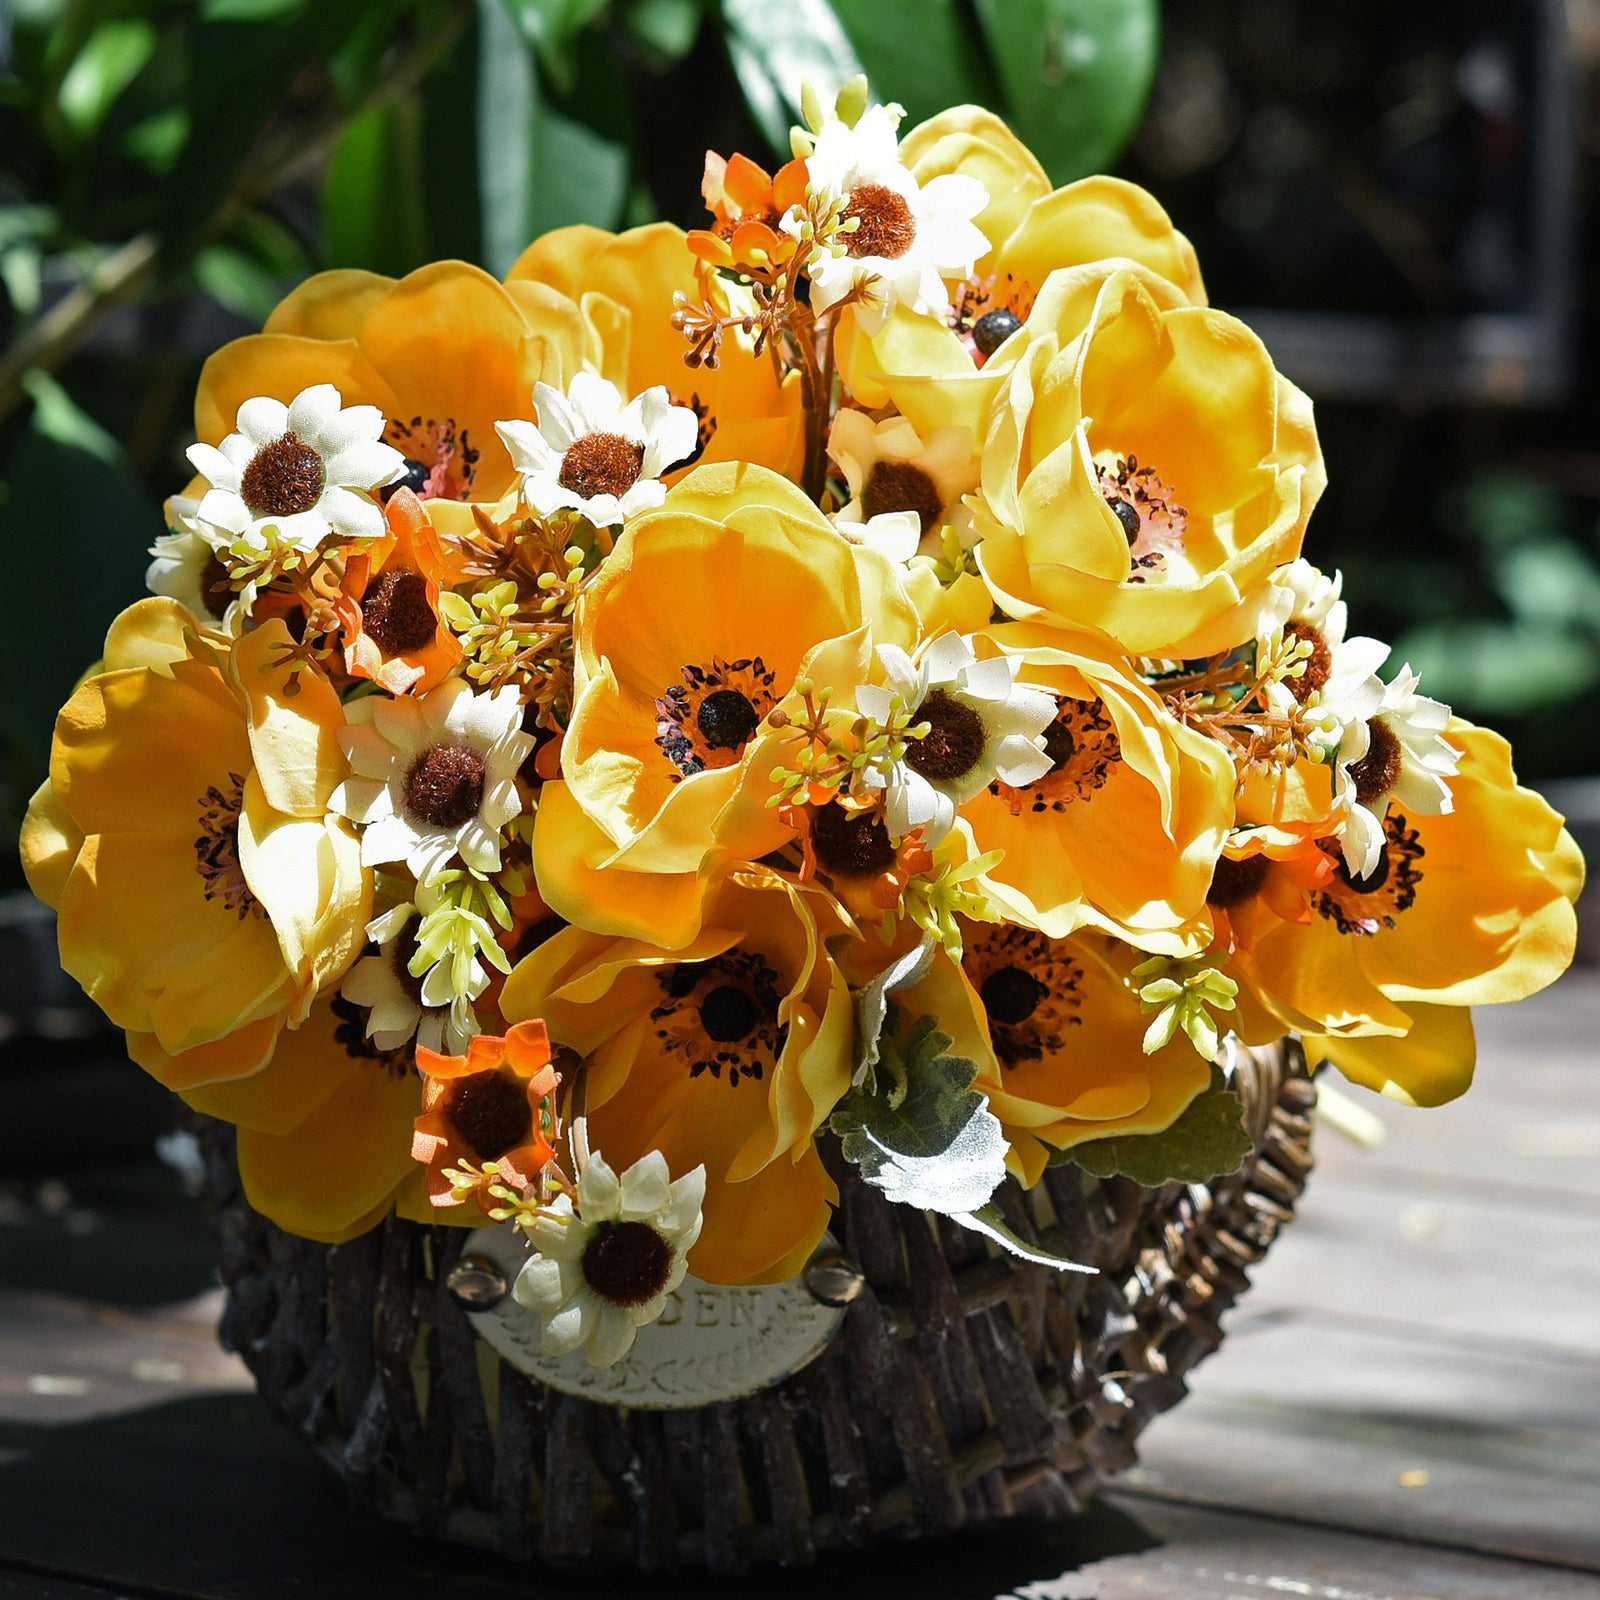 12 Long Stems of 'Real Touch' Artificial (Orange) Anemone Flowers, Wedding Bouquet Flower Arrangement, 45cm (17.7 inches)